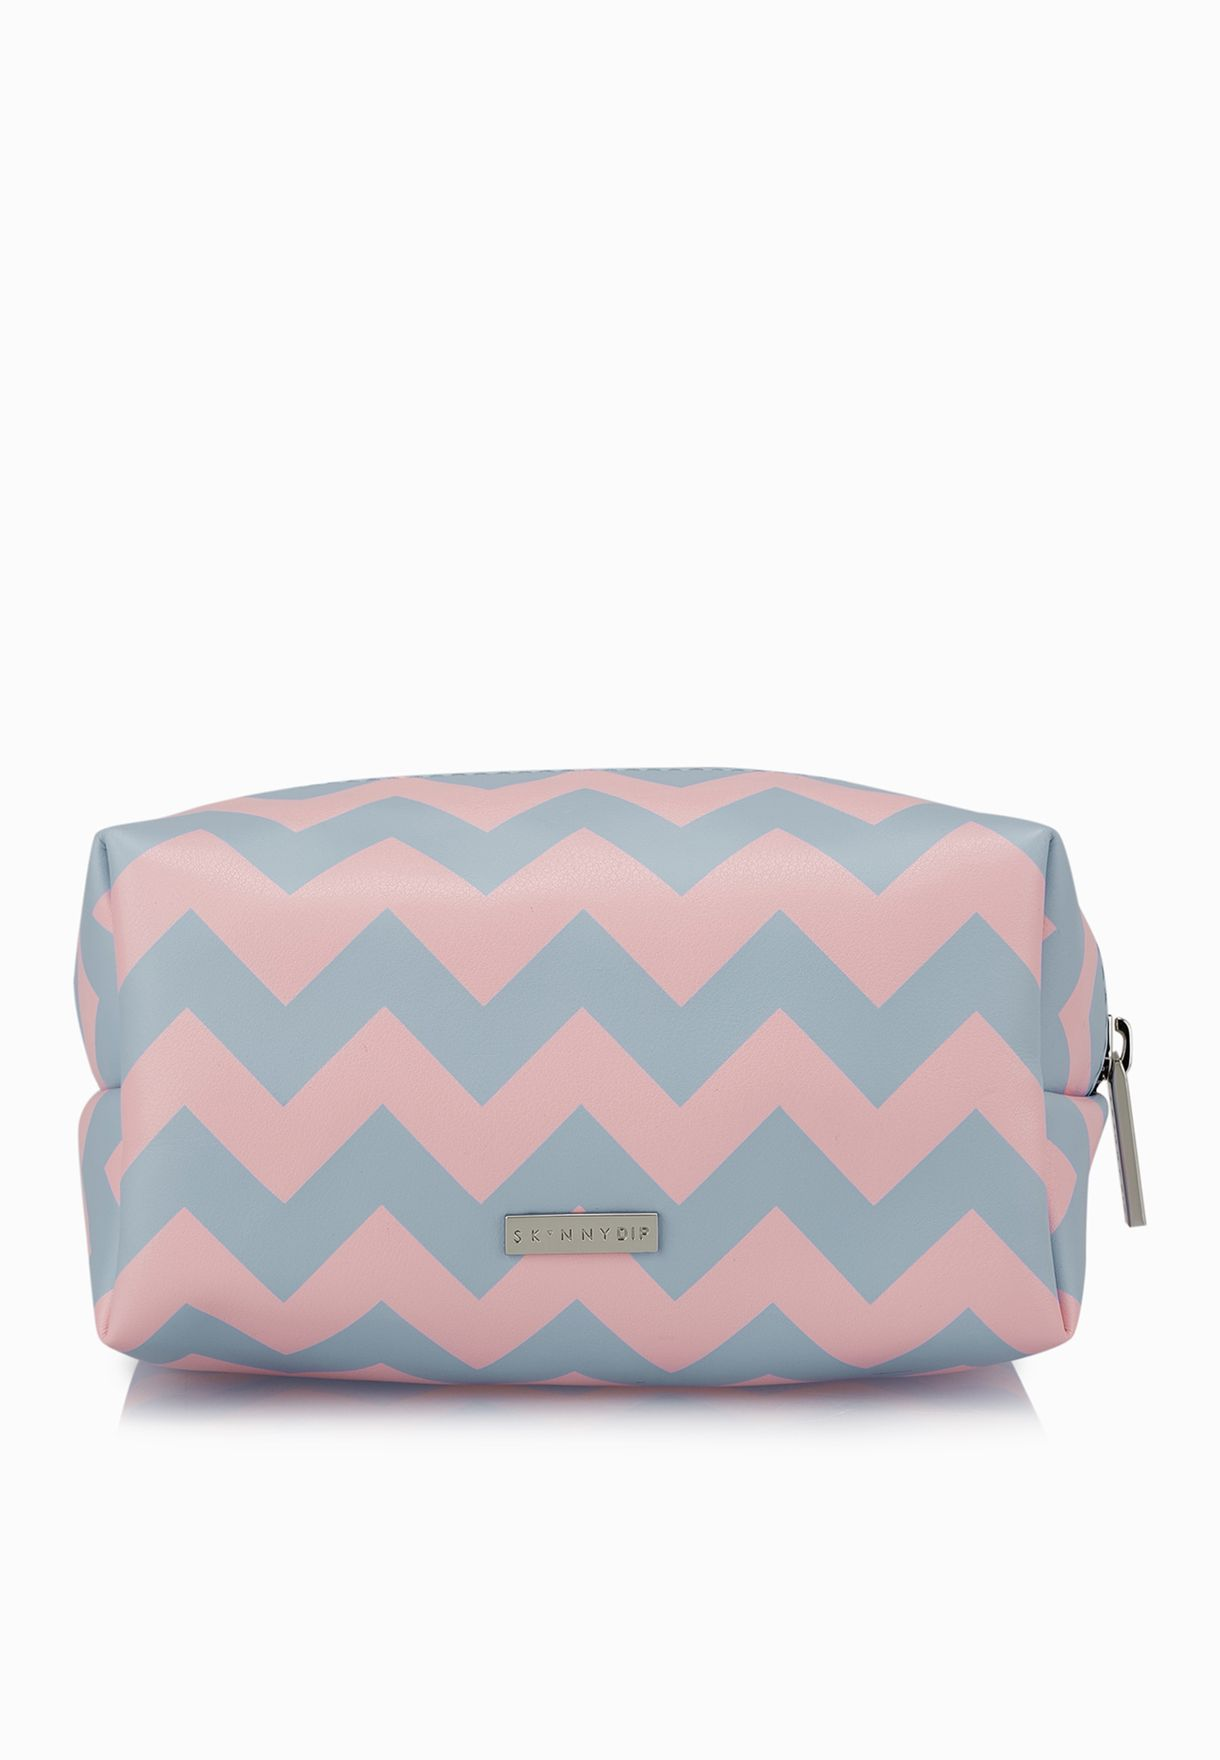 Shop Skinny dip london multicolor Chevron Cosmetic Bag for Women in ... e05dce42408a4